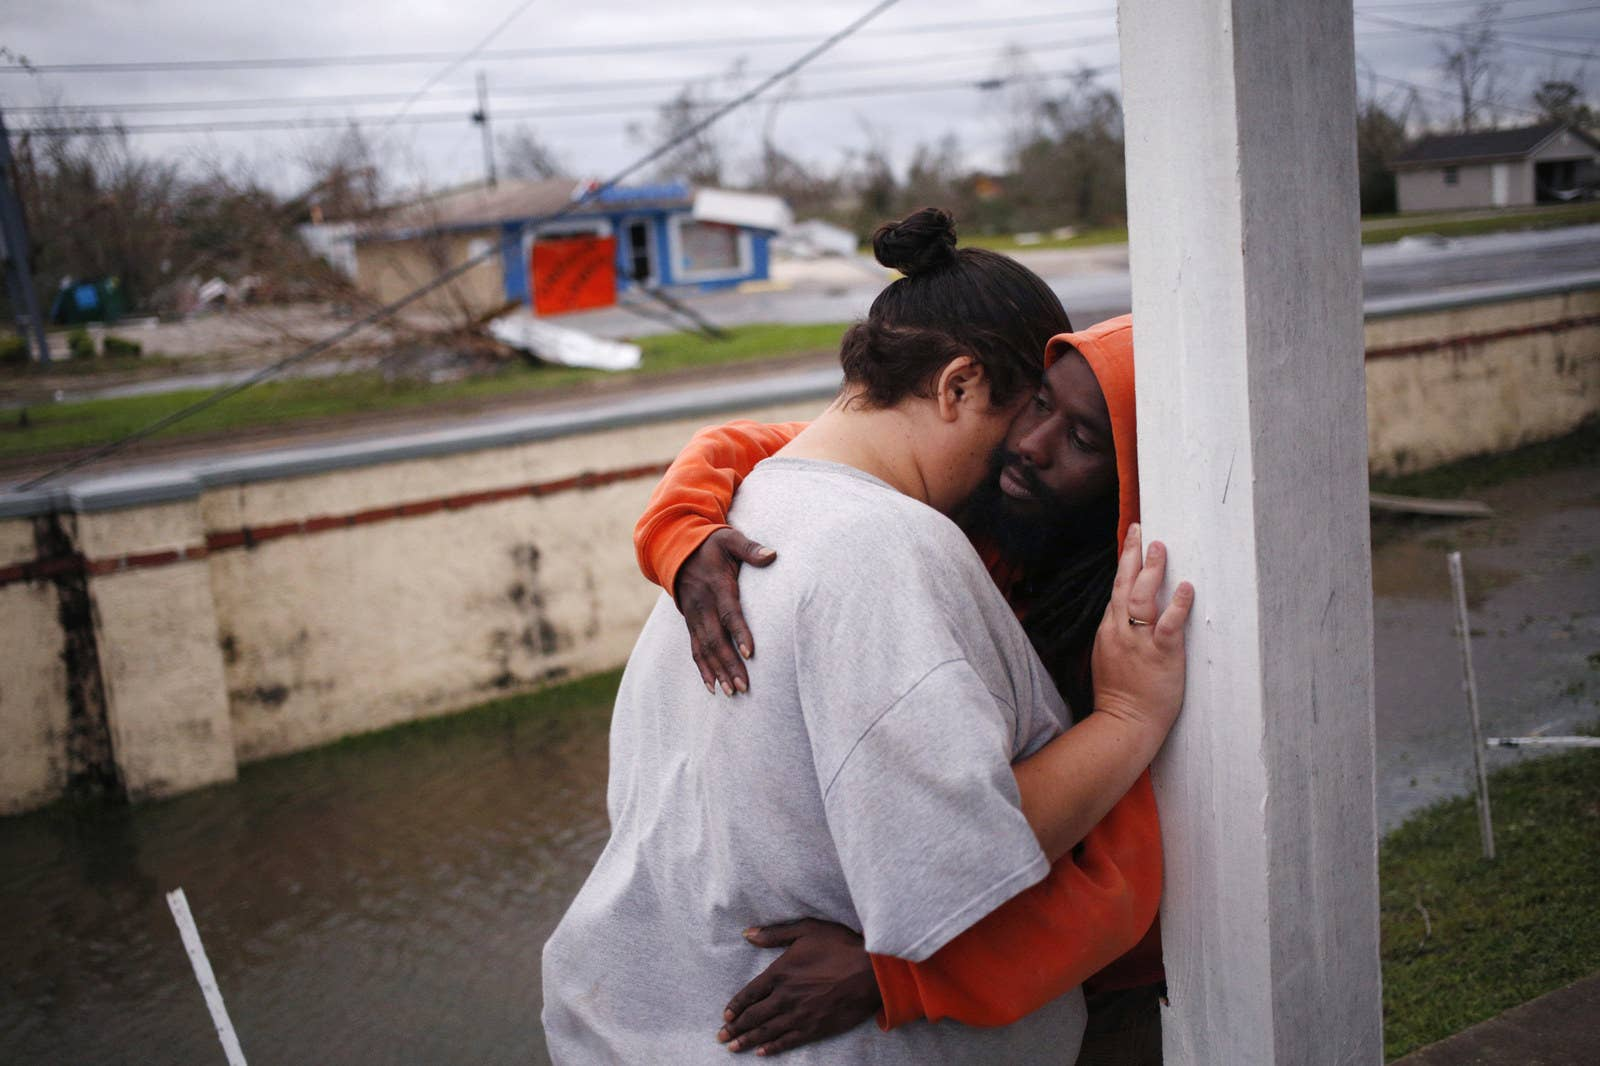 Residents embrace in front of their destroyed apartment building in Panama City, Florida.